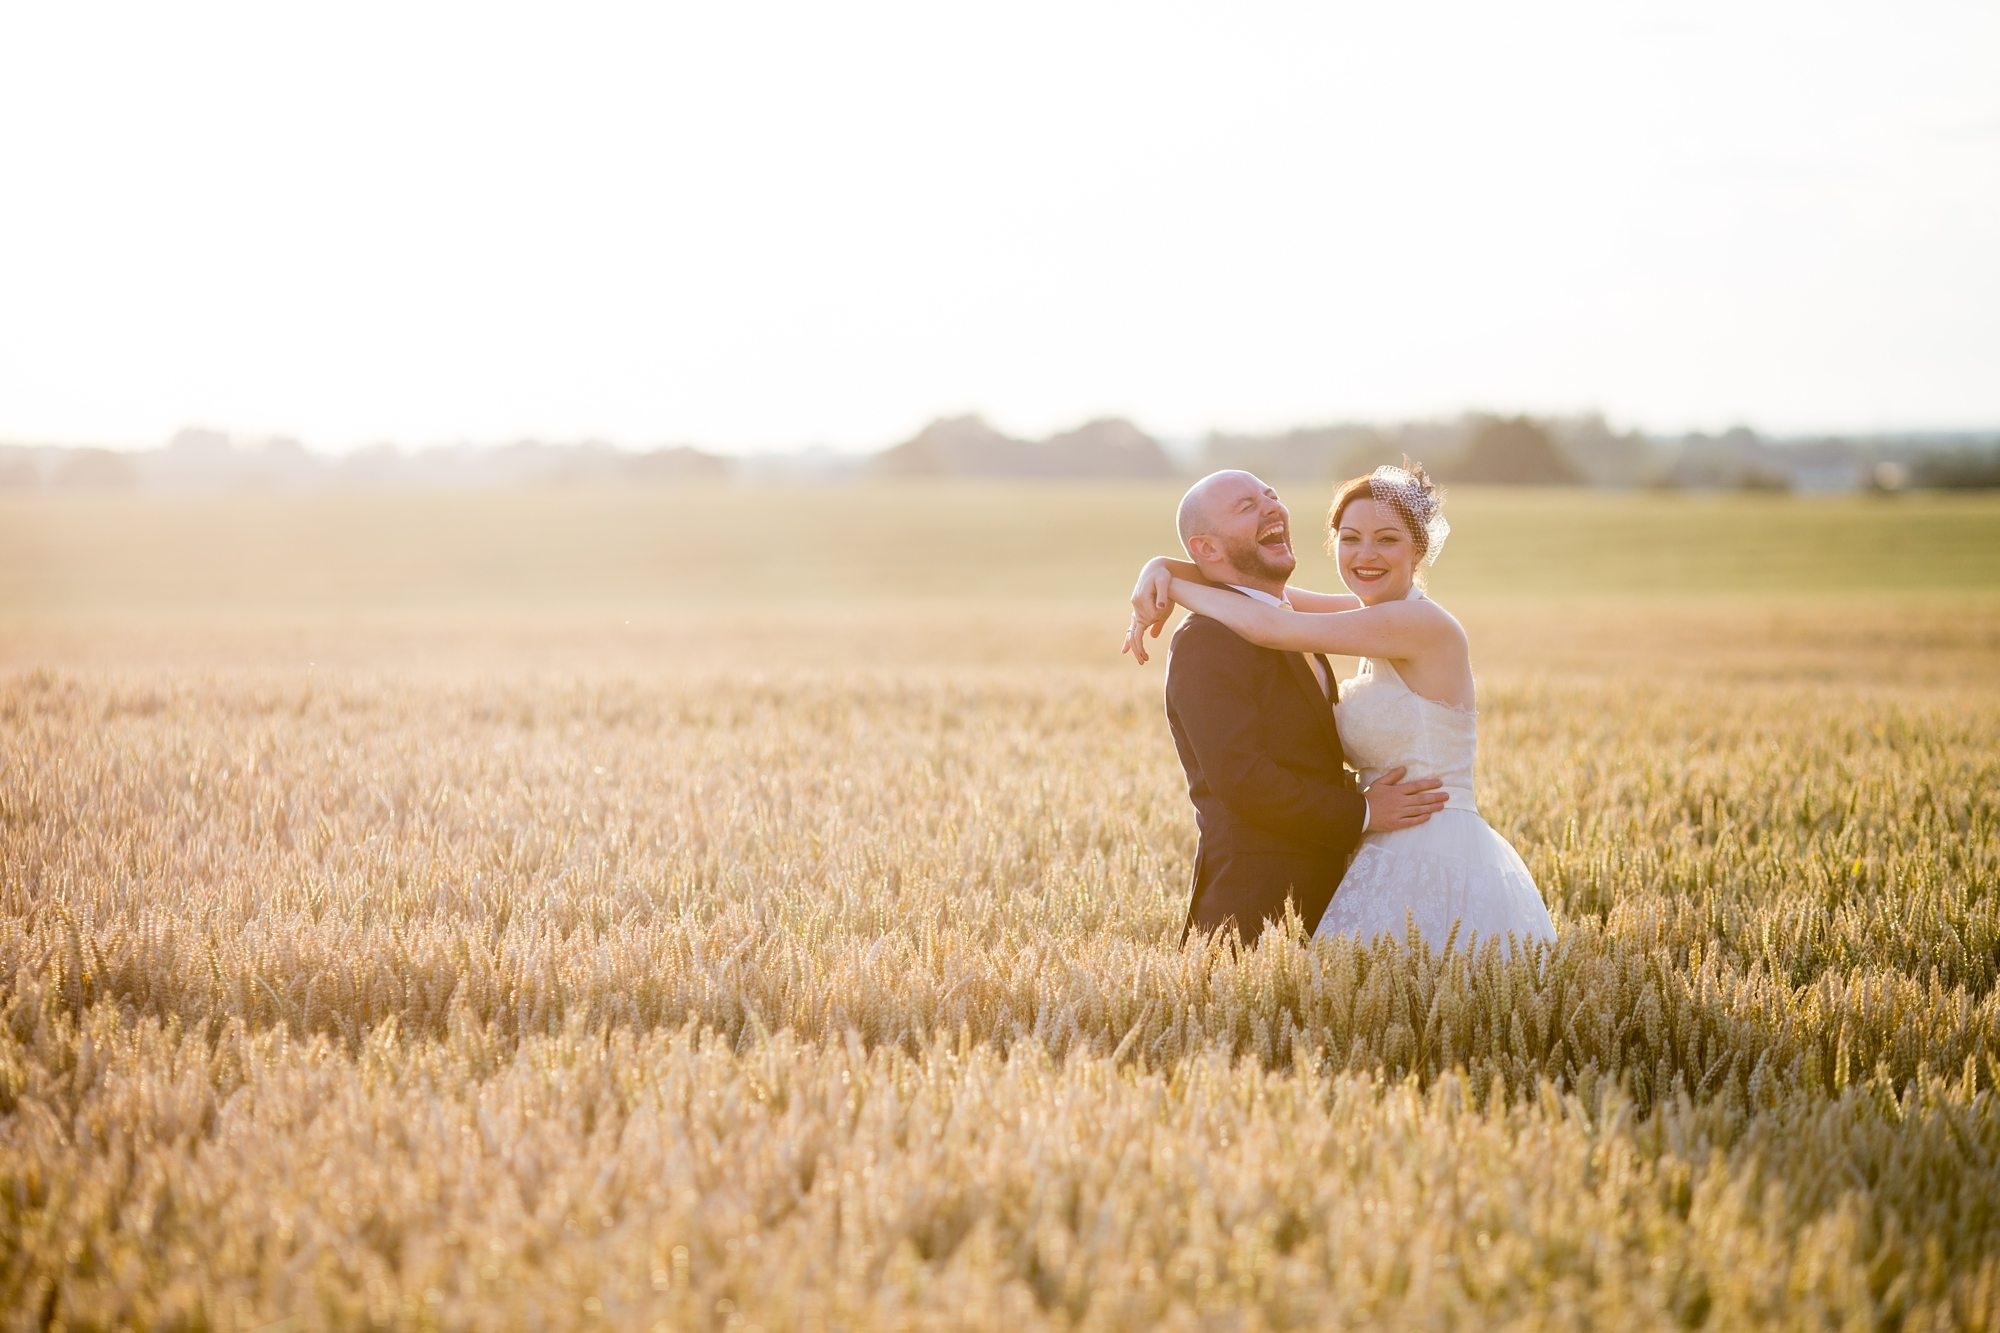 groom hugging holding bride in cronfield under bright sun